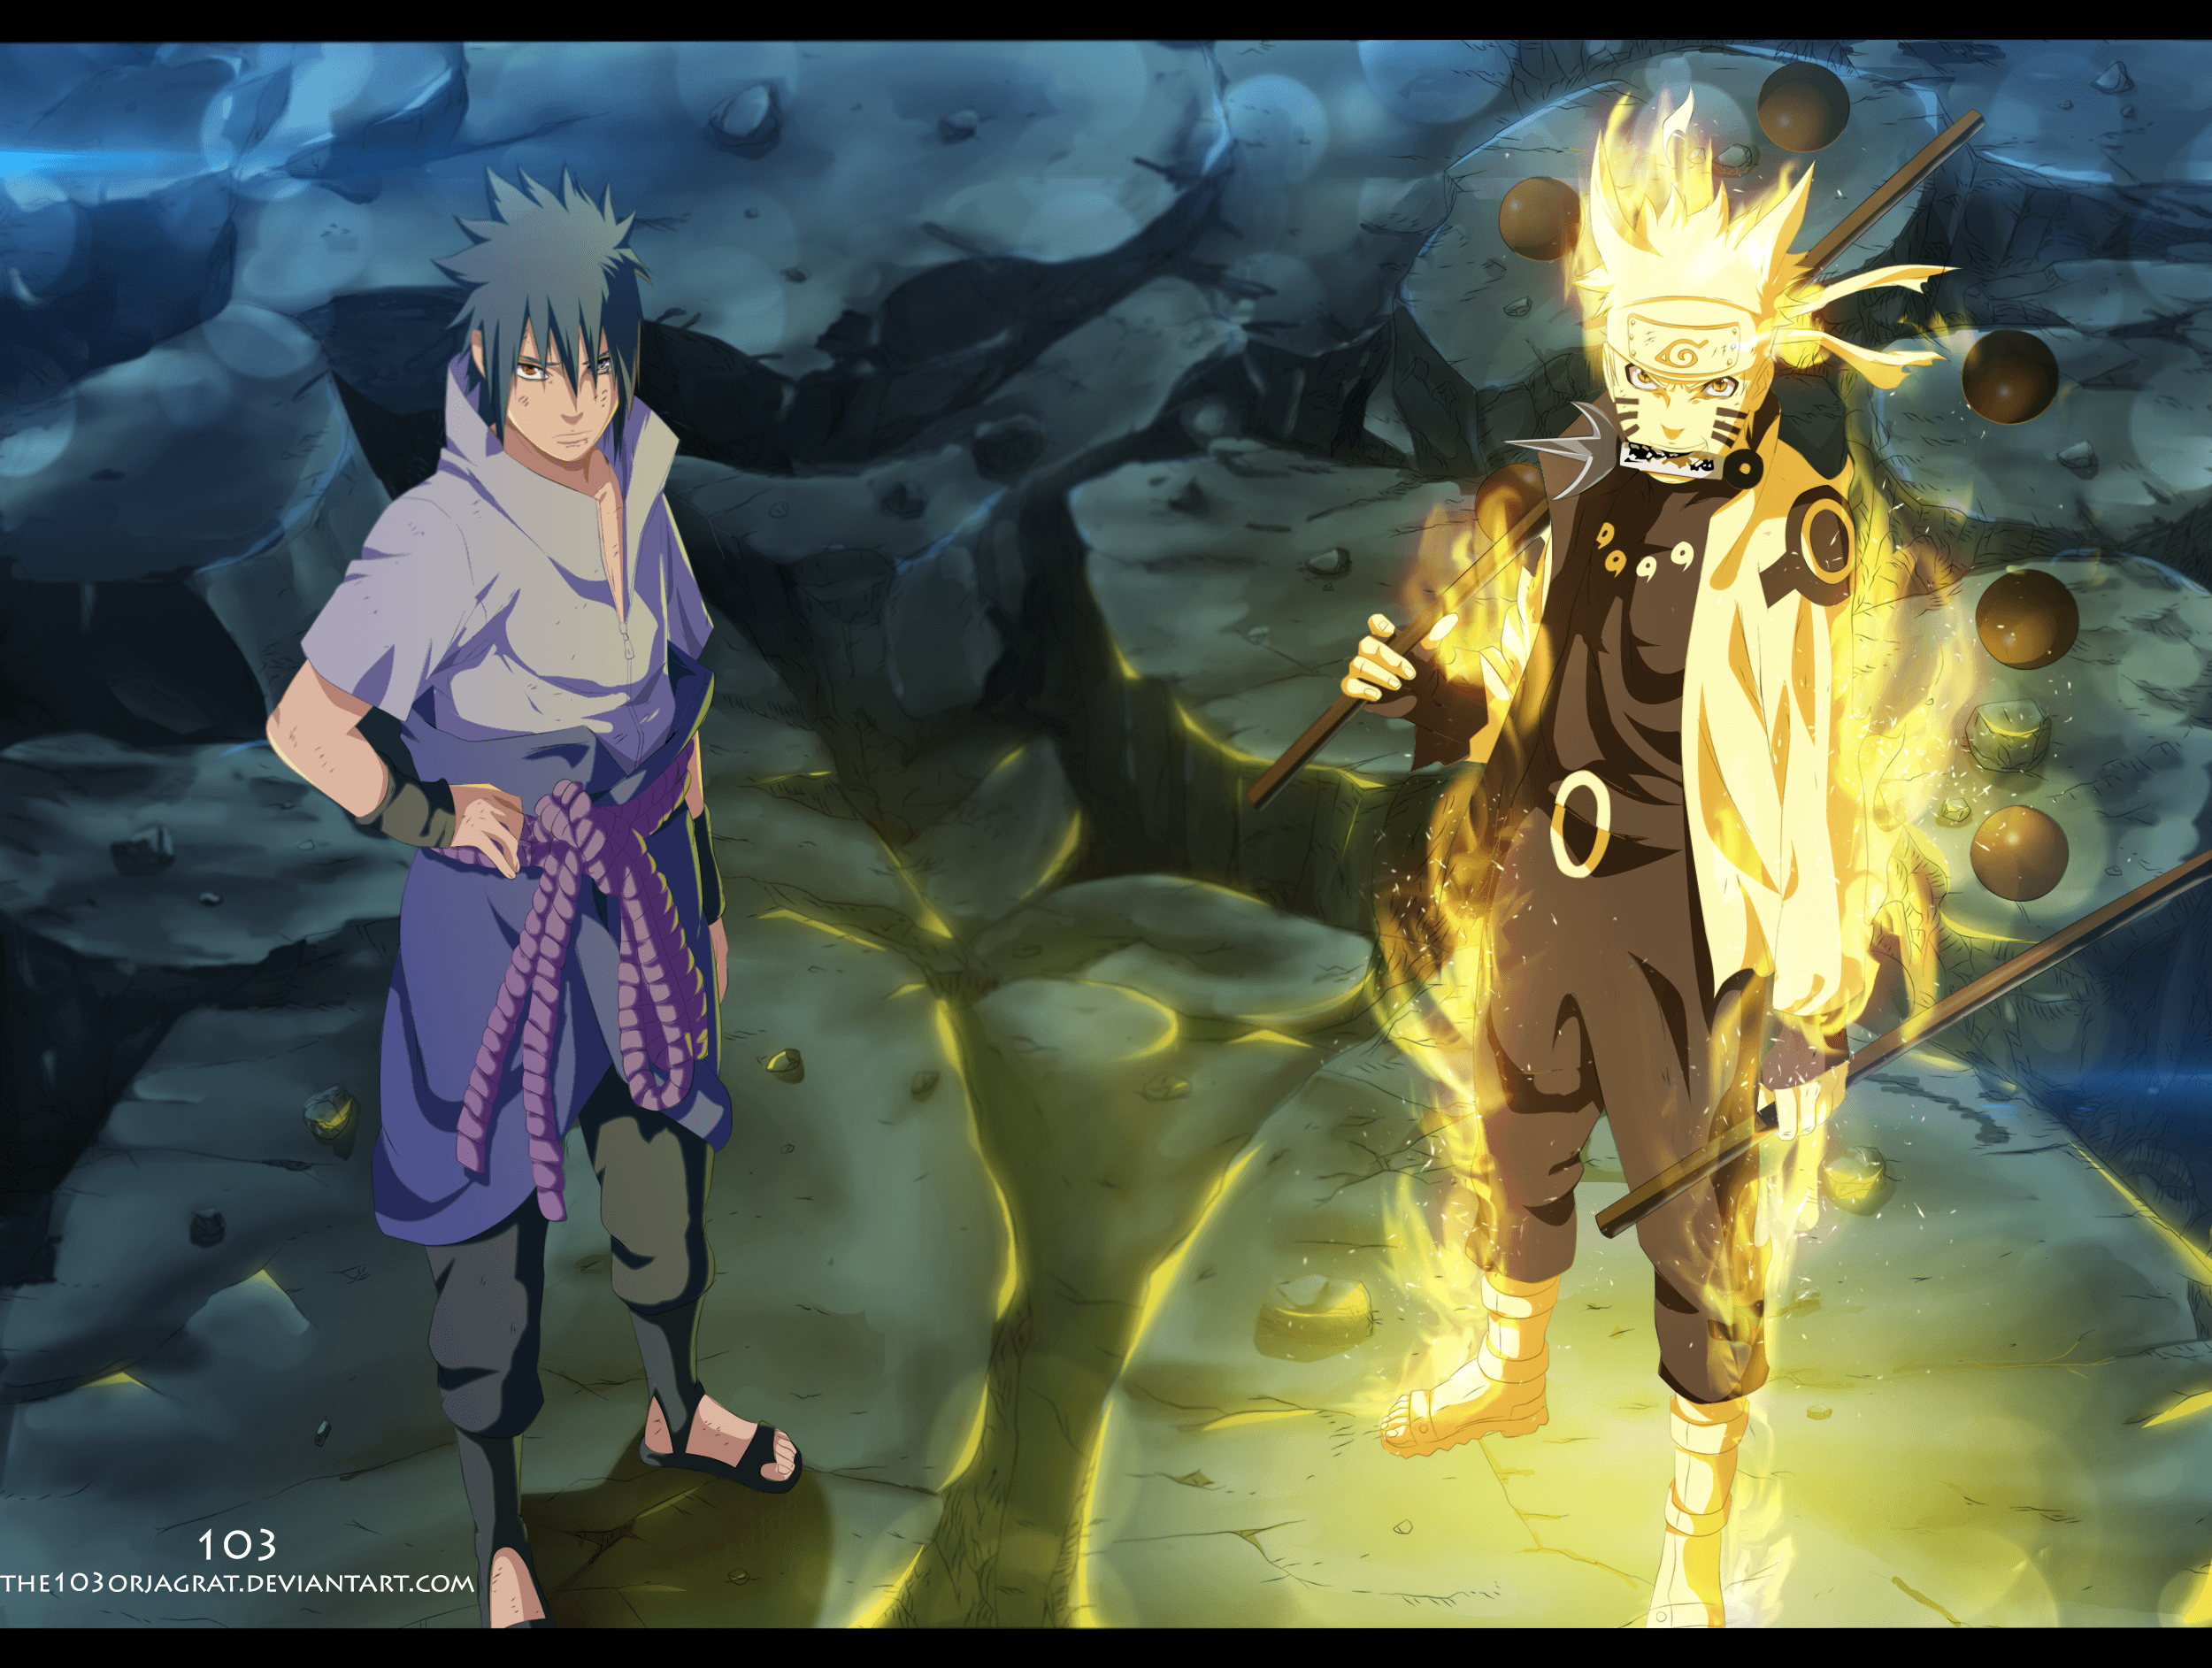 Naruto And Sasuke Vs Madara Wallpapers Wallpaper Cave